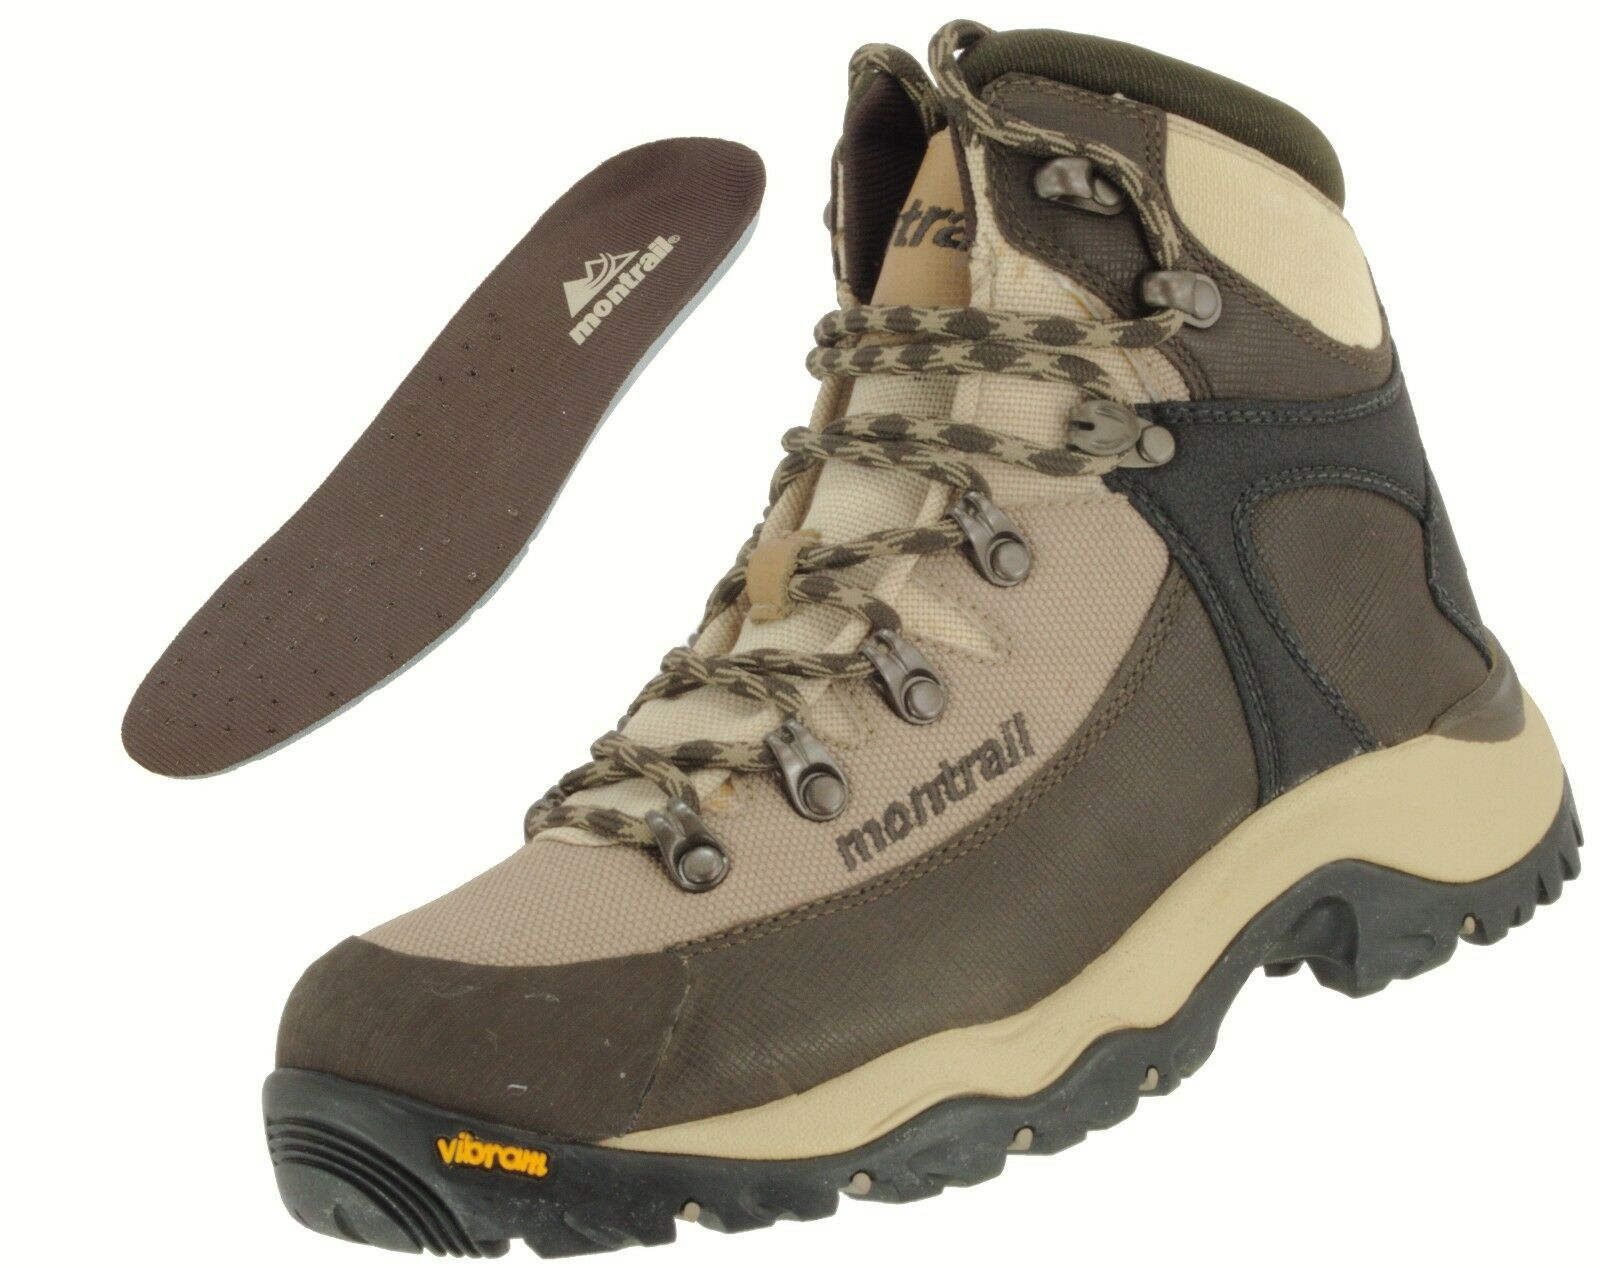 MONTRAIL SAMPLE WOMEN'S FEATHER PEAK CORDURA BACKPACKING TRAIL HIKING BOOT US 7